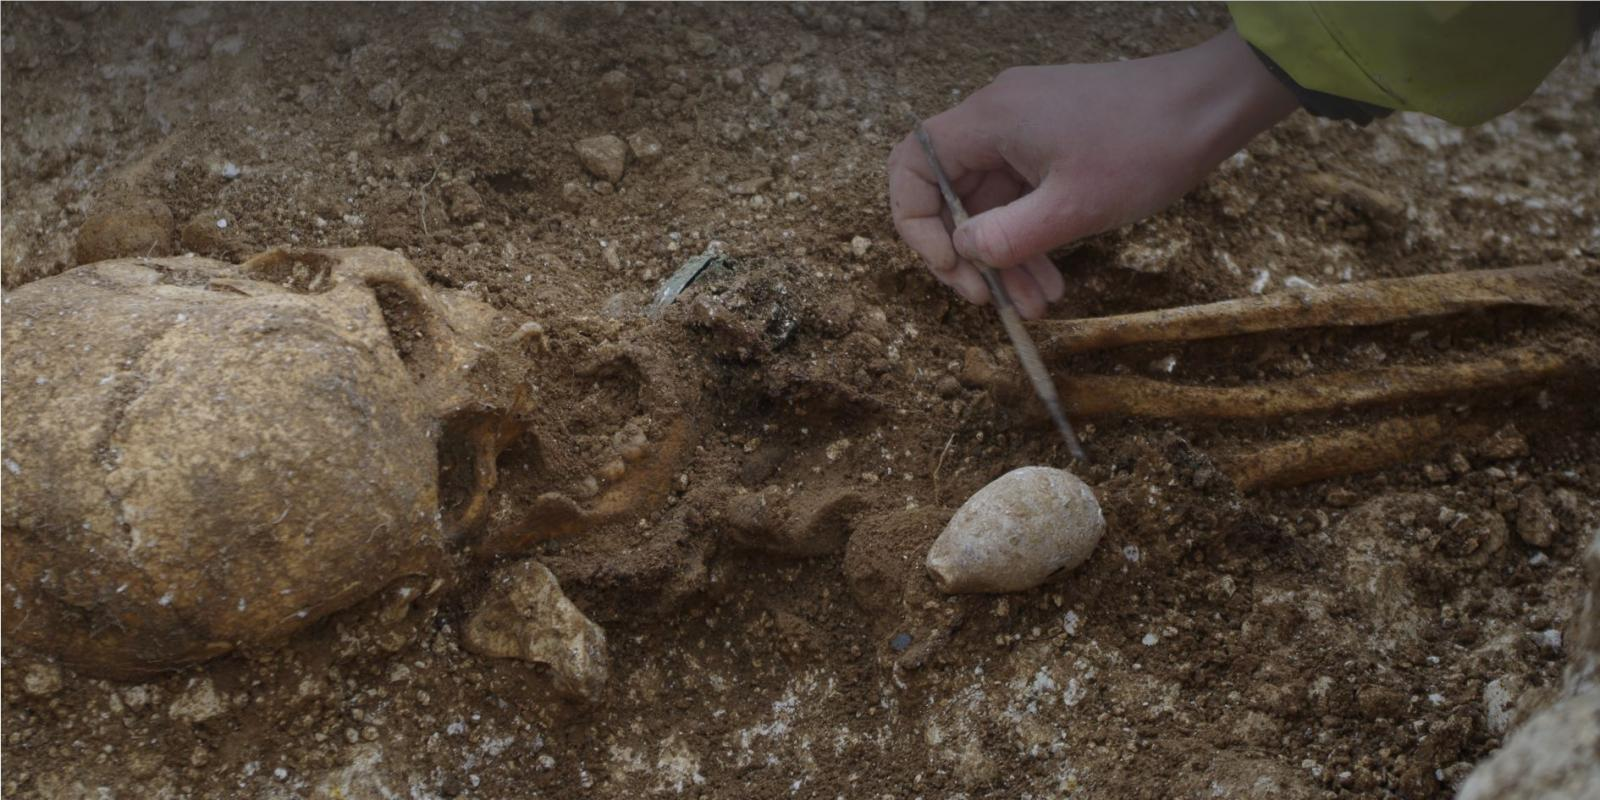 Excavating an inhumation burial